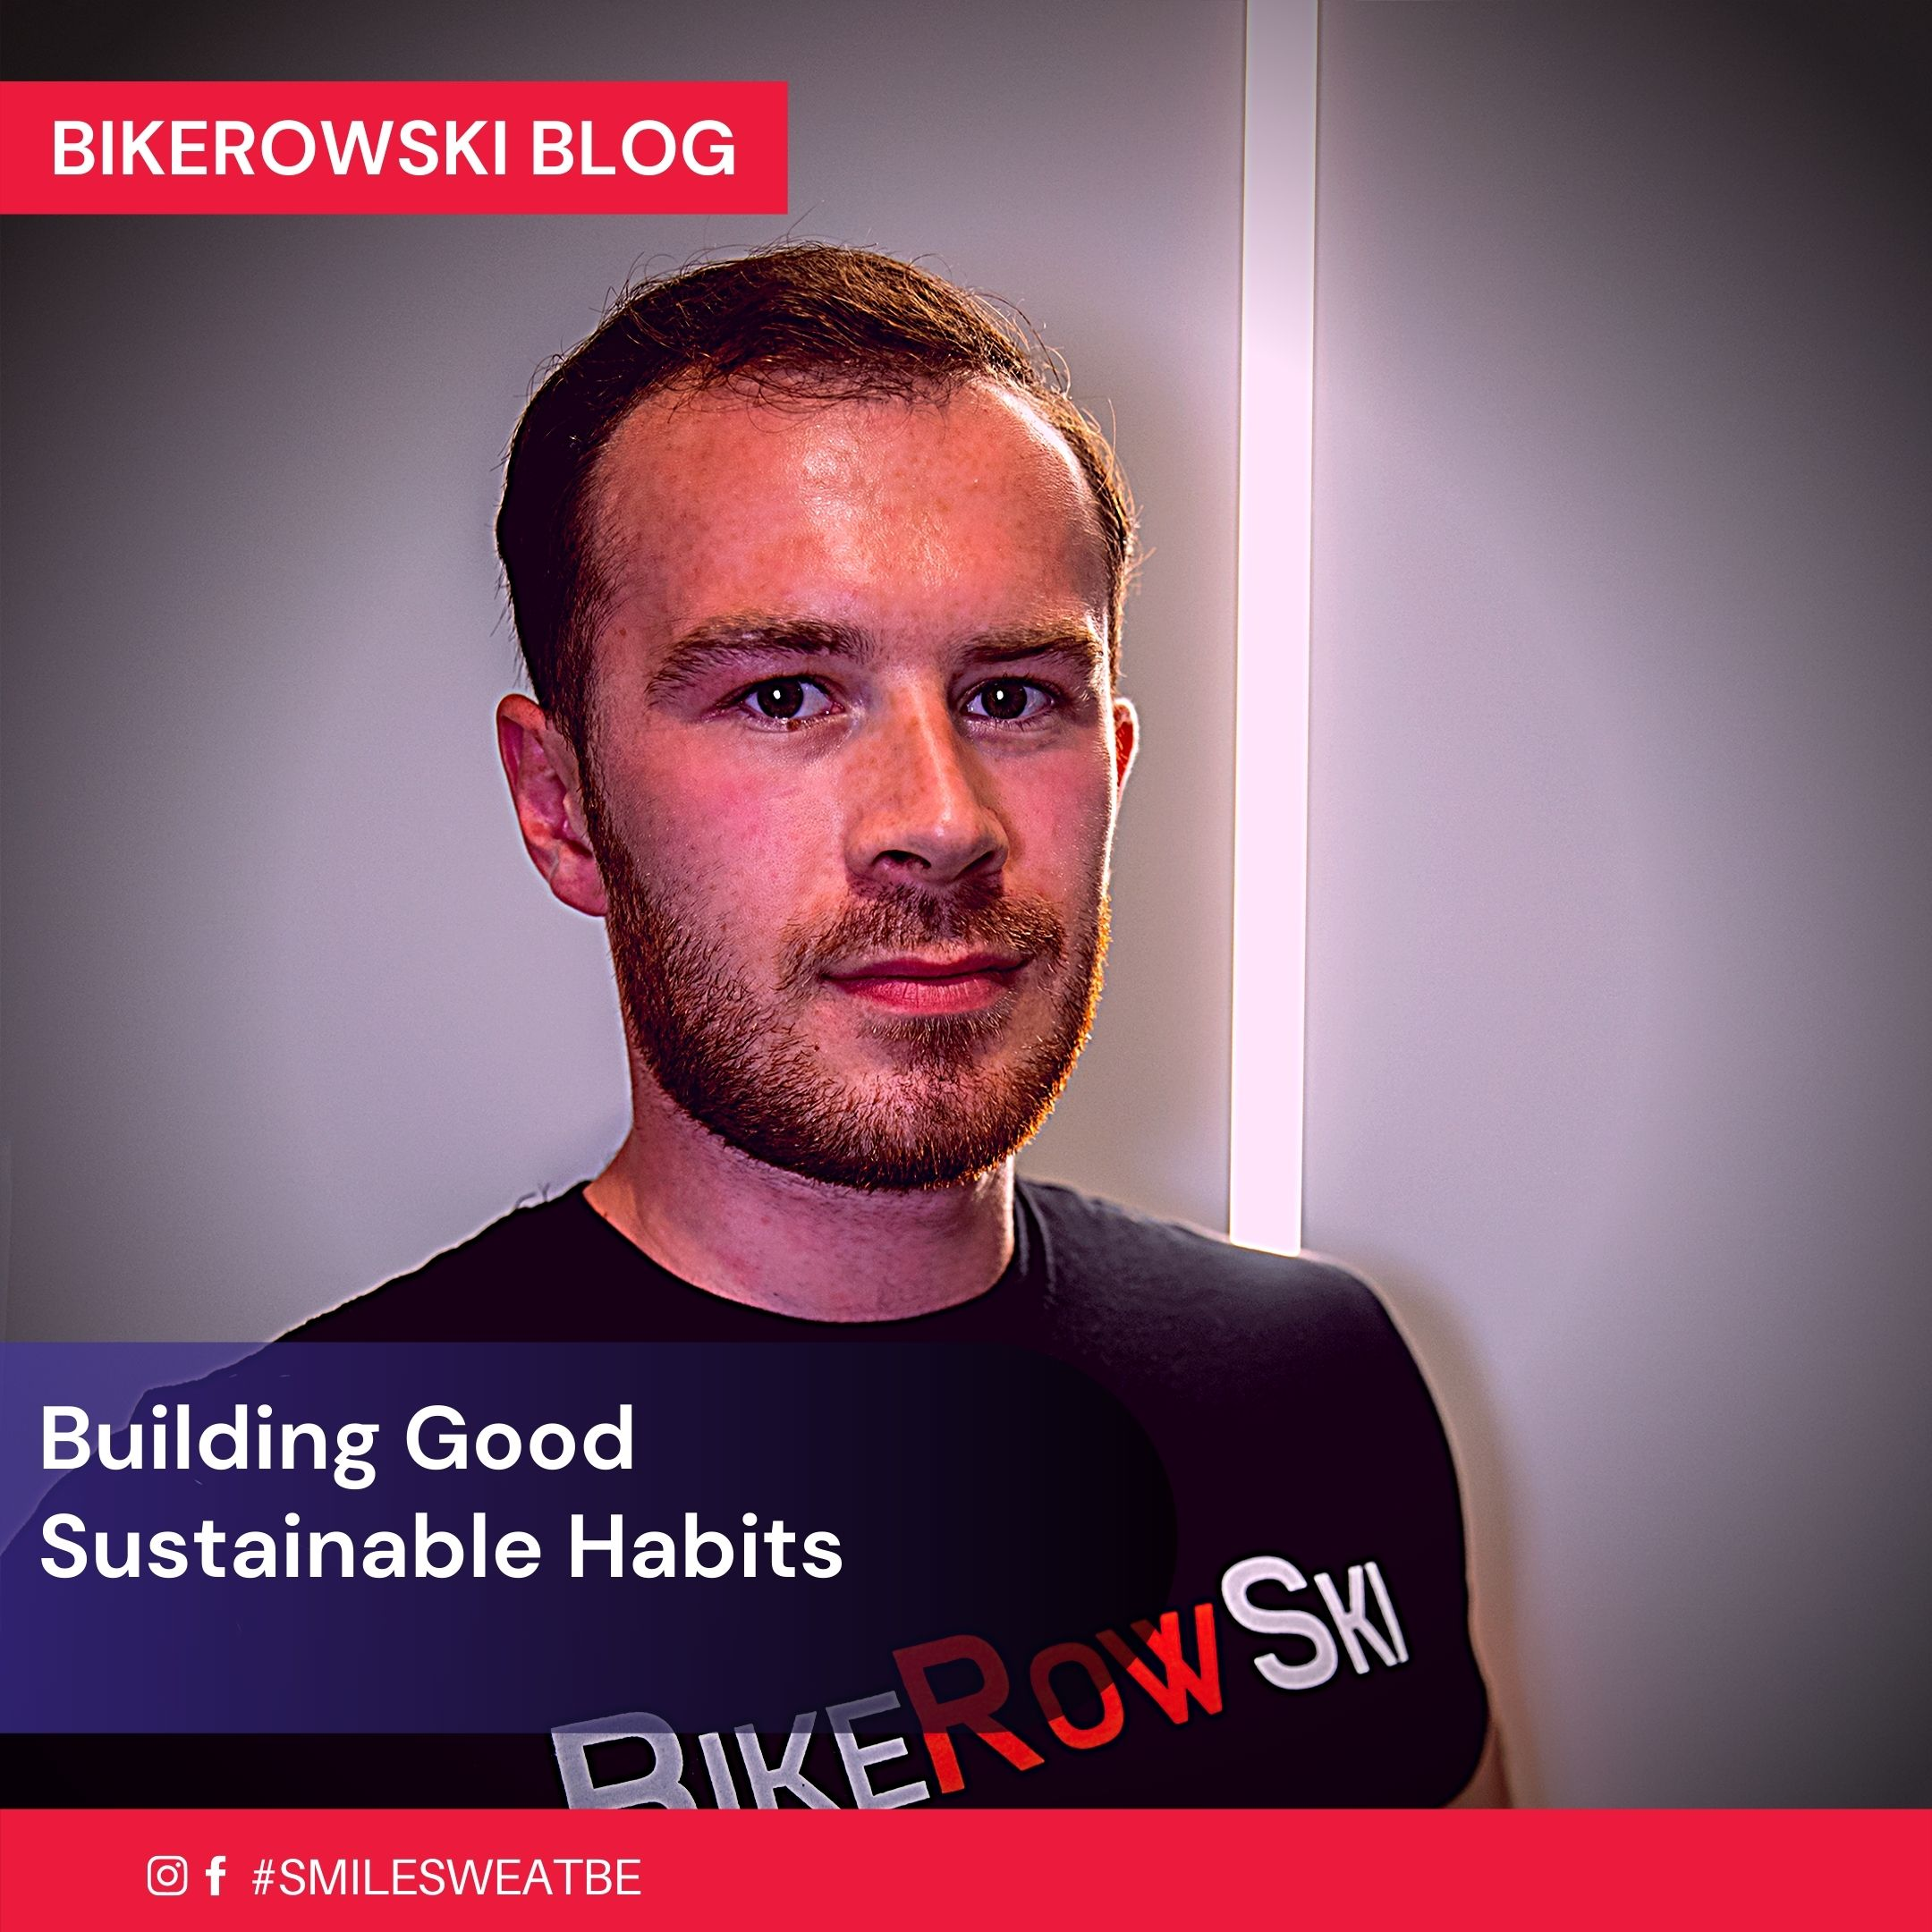 Building Good Sustainable Habits